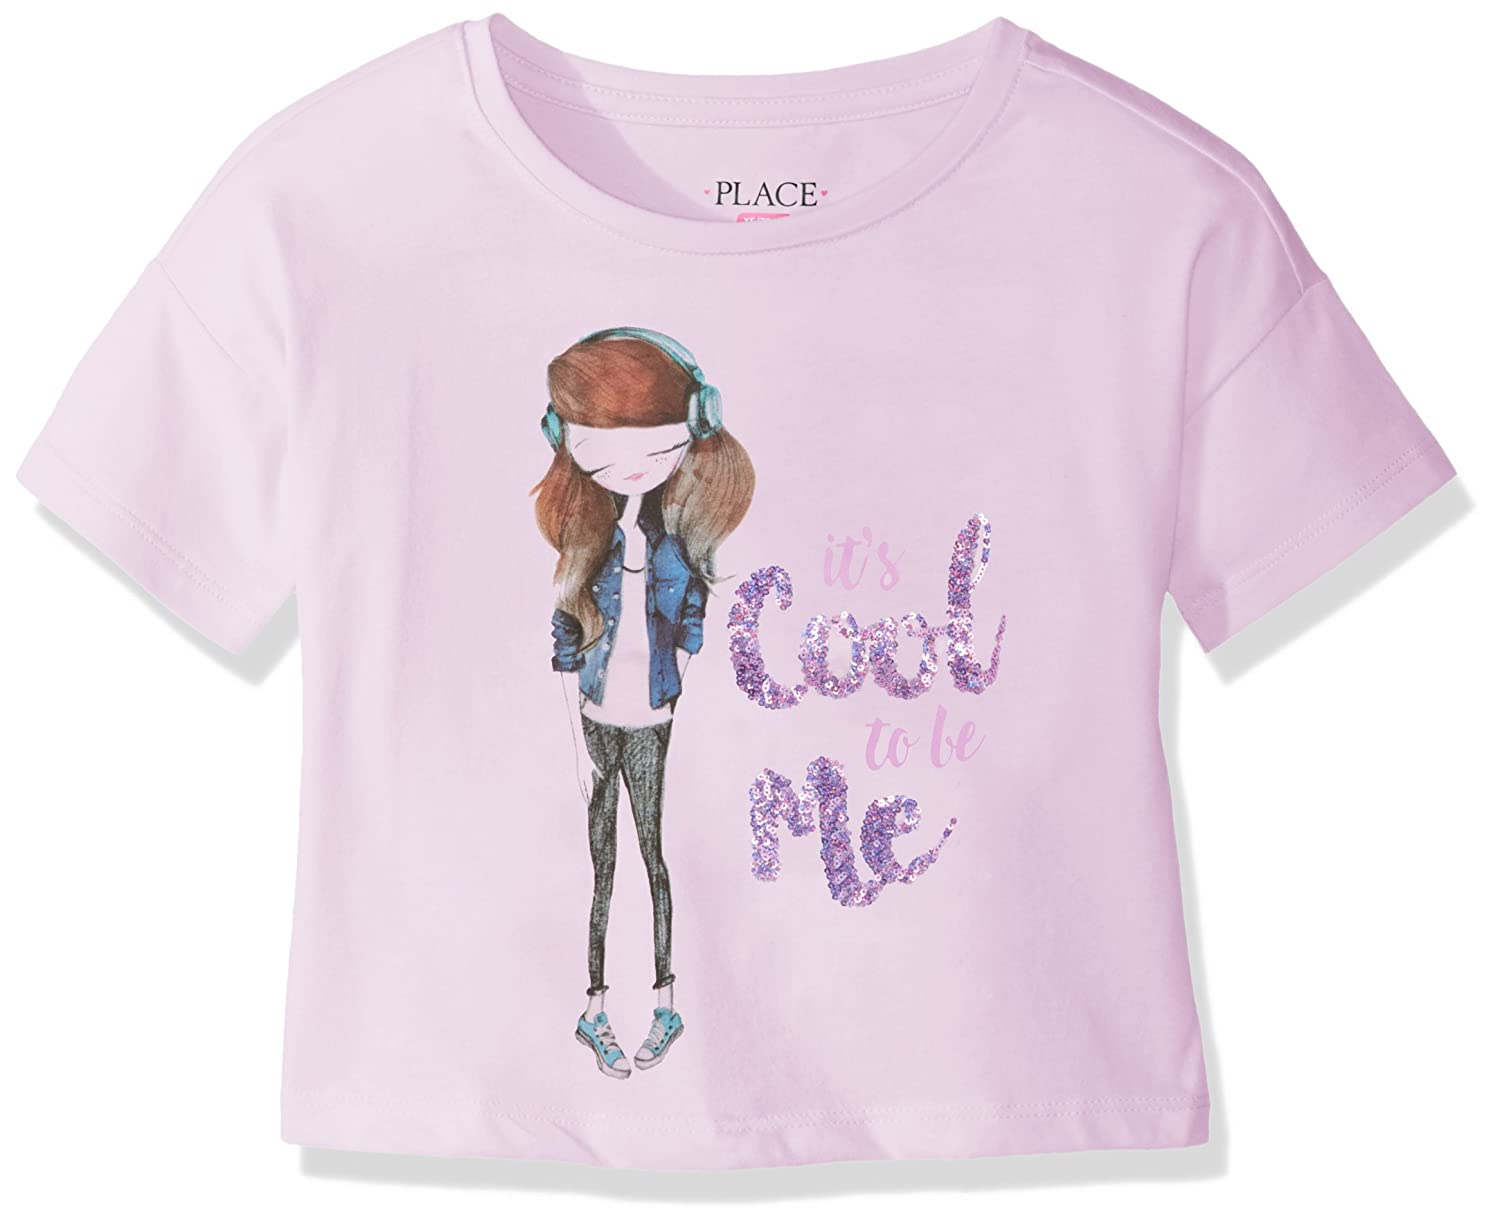 The Children's Place Girls' Short Sleeve Top 2063638